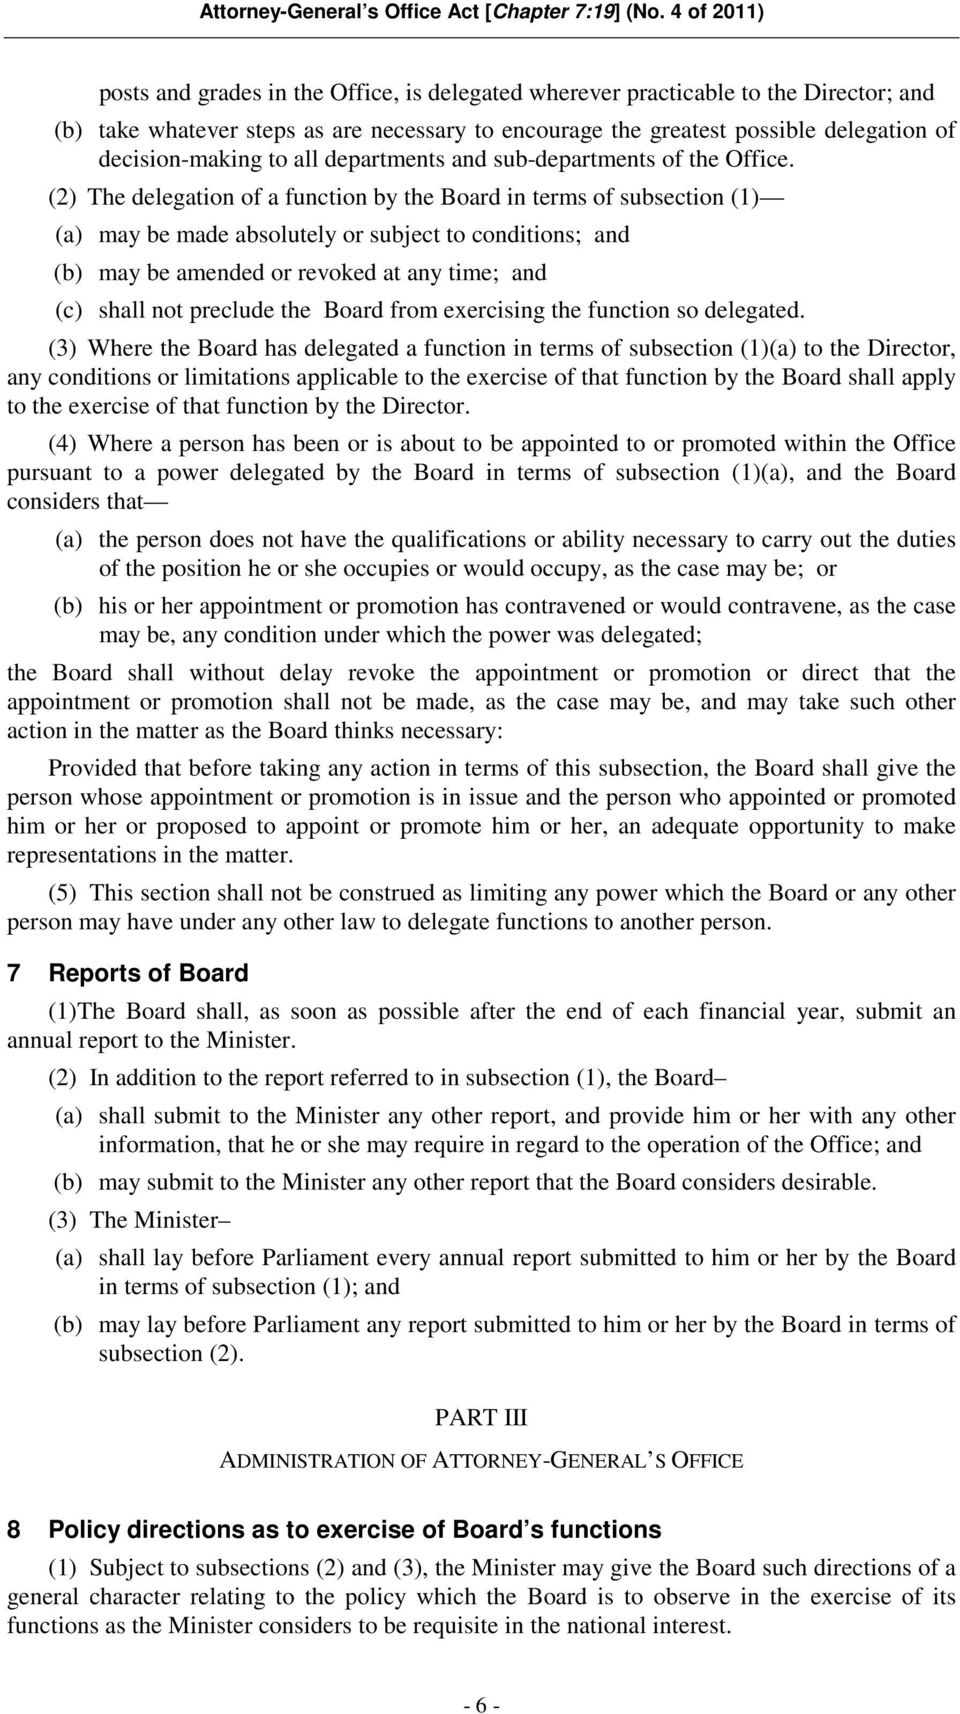 (2) The delegation of a function by the Board in terms of subsection (1) (a) may be made absolutely or subject to conditions; and (b) may be amended or revoked at any time; and (c) shall not preclude